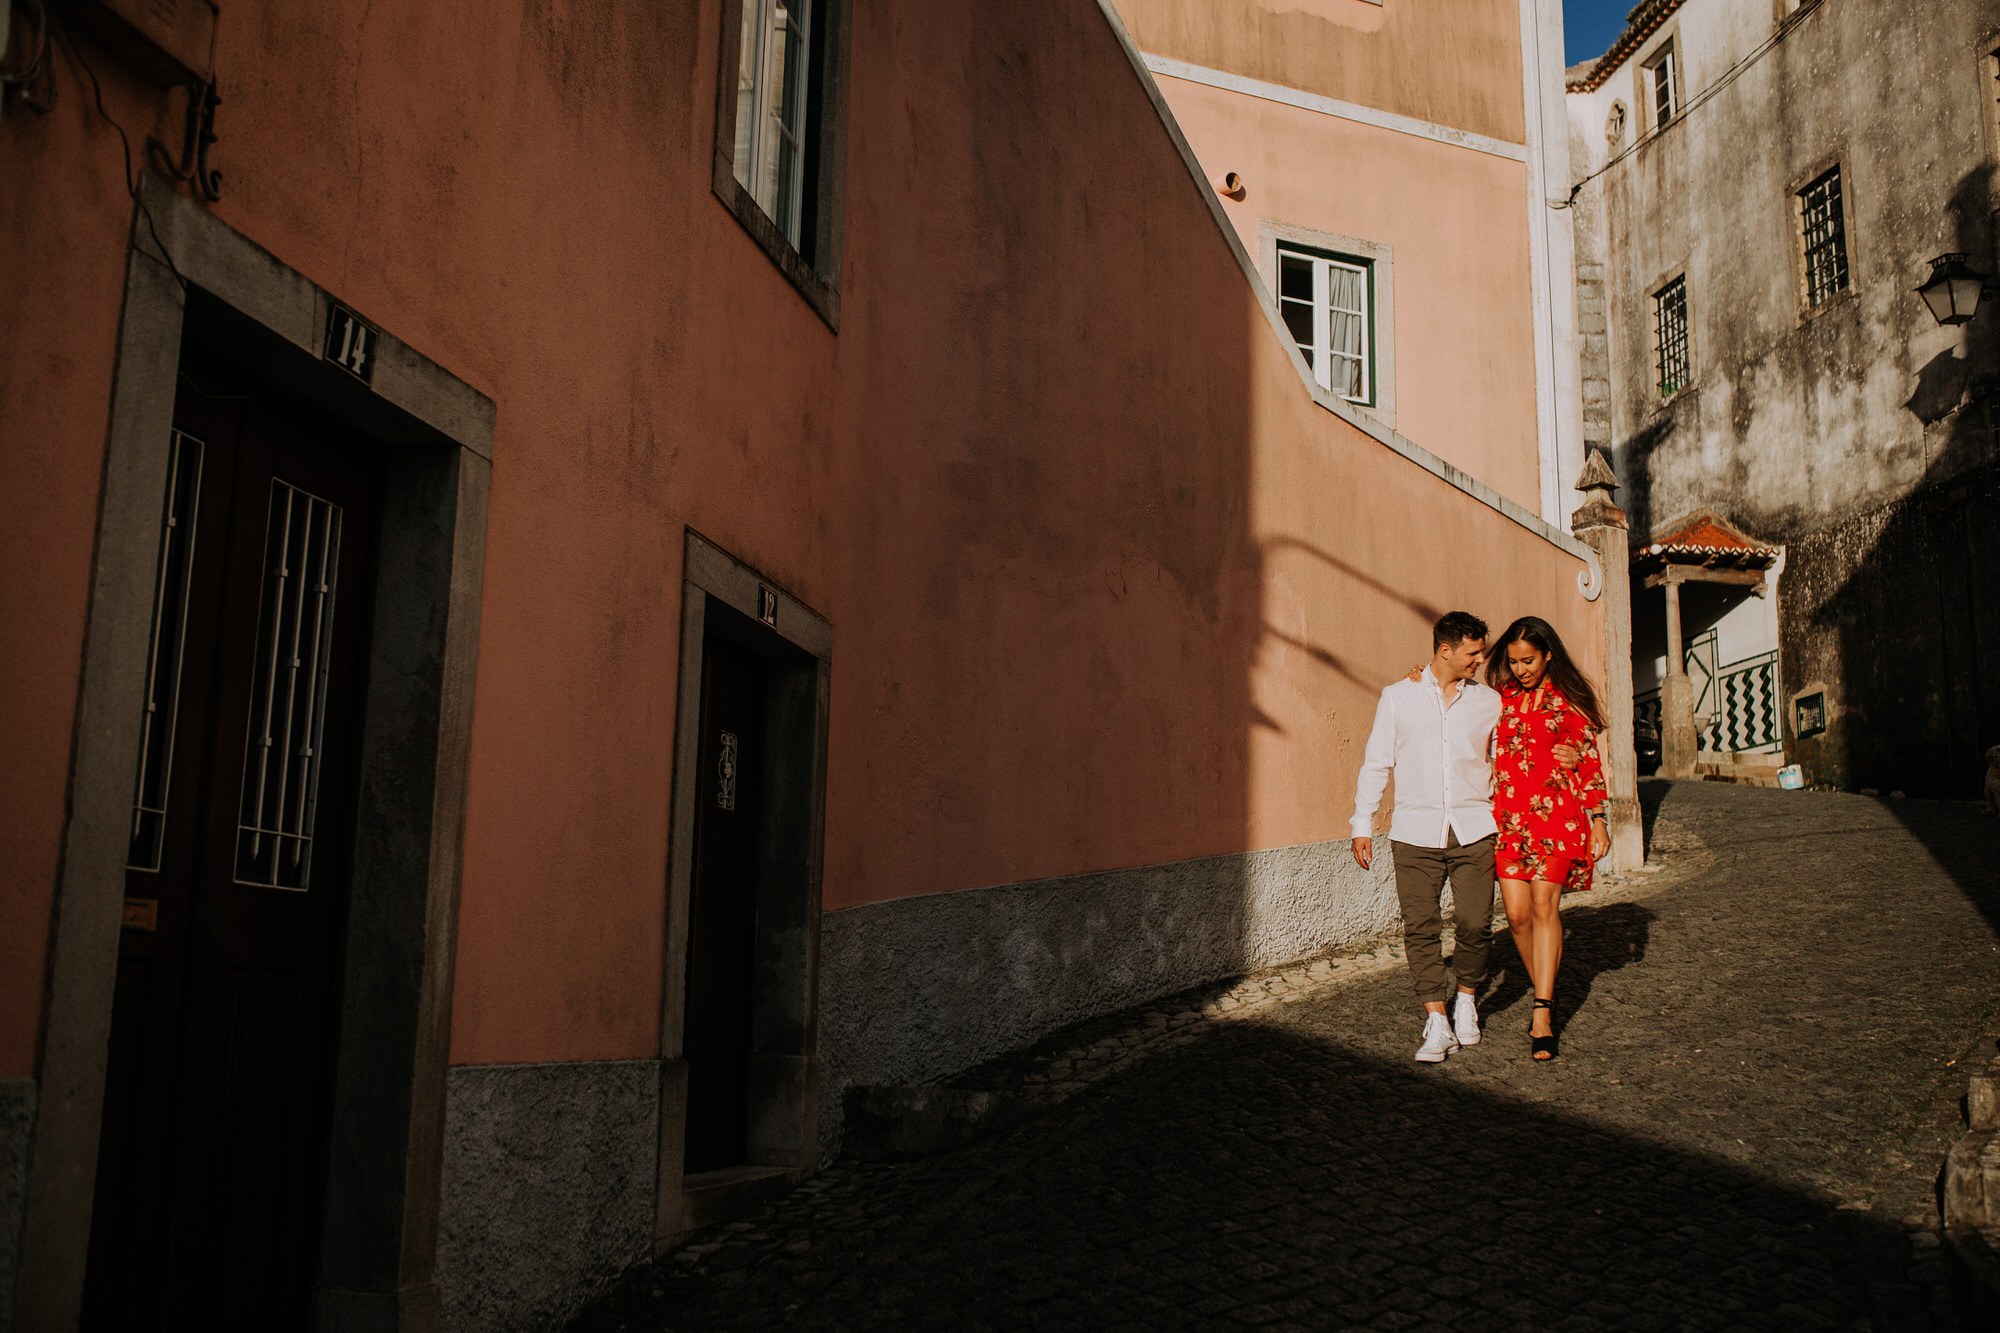 12-sessao-noivado-engagement-love-session-Sintra-lisboa-town-wedding-photography-photographer-natural-best-venue-planner-destination-filipe-santiago-fotografia-lifestyle-documentary